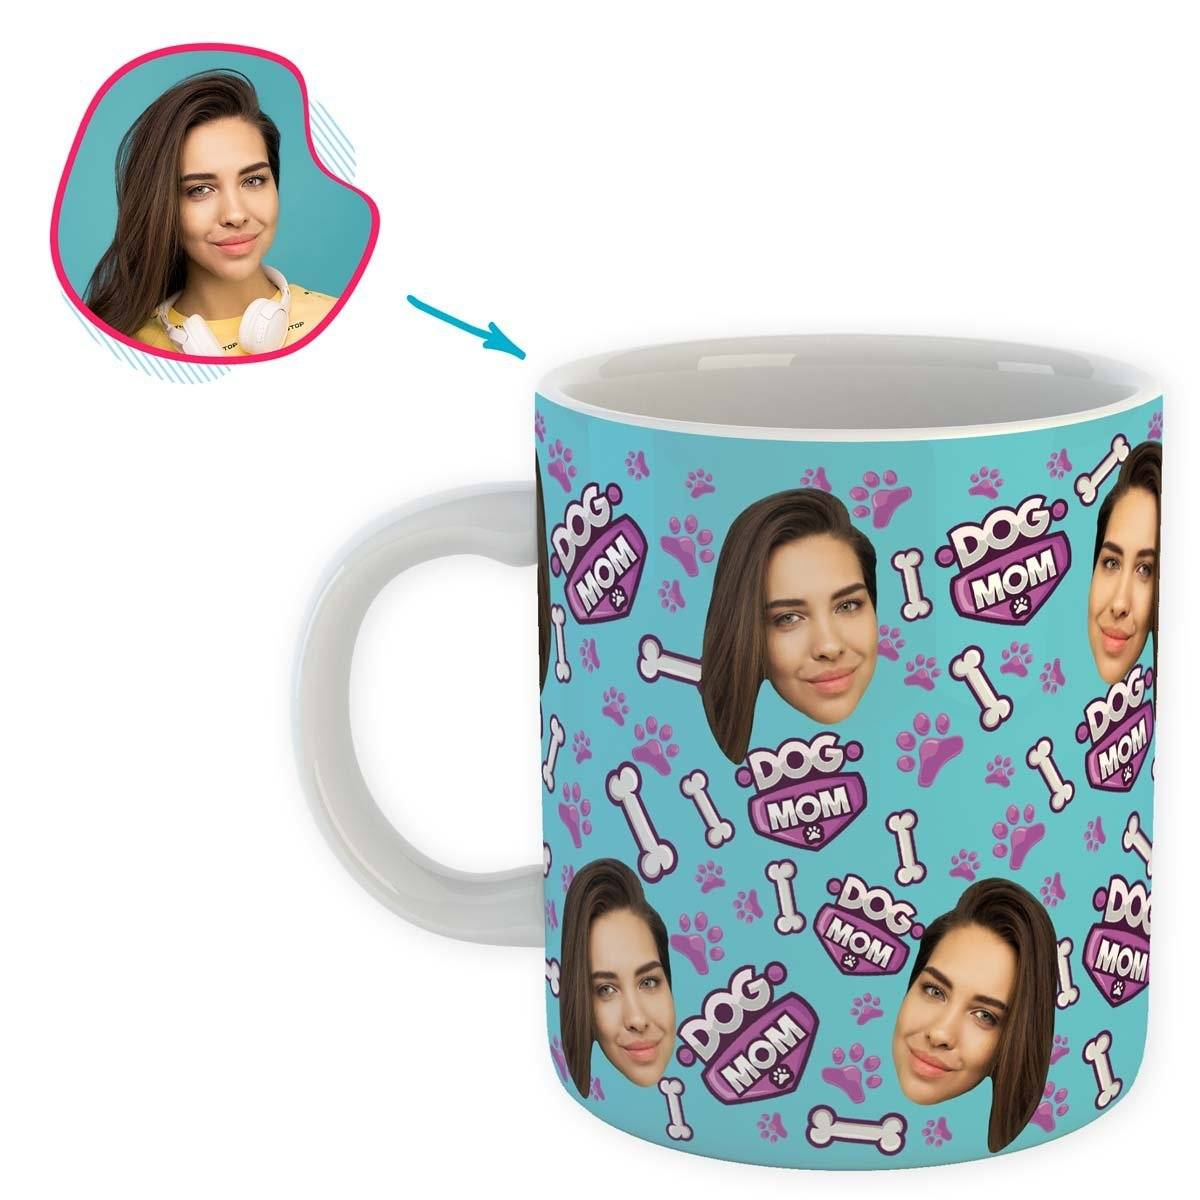 blue Dog Mom mug personalized with photo of face printed on it